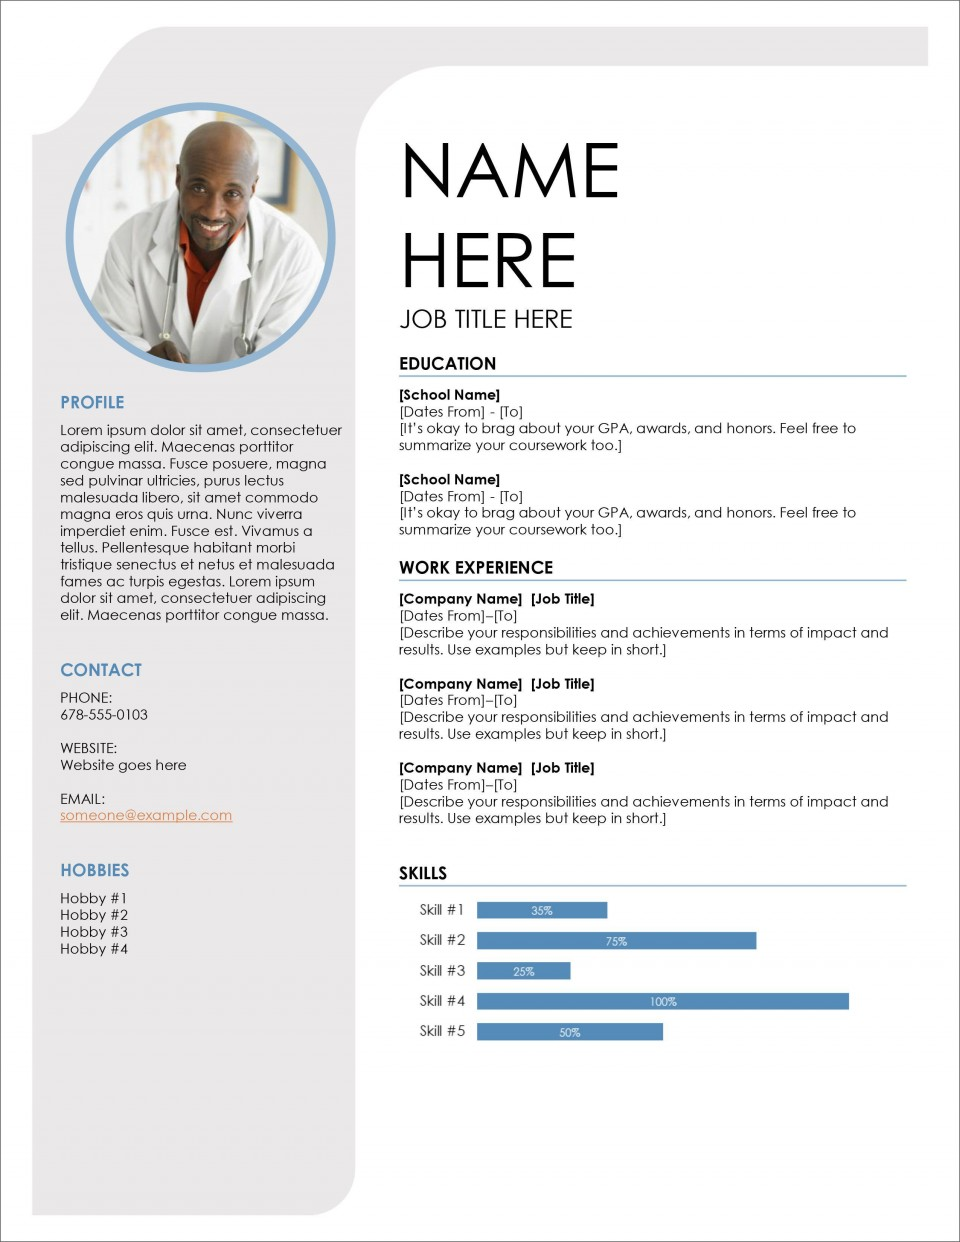 006 Stirring Resume Sample Free Download Doc Picture  Resume.doc For Fresher960